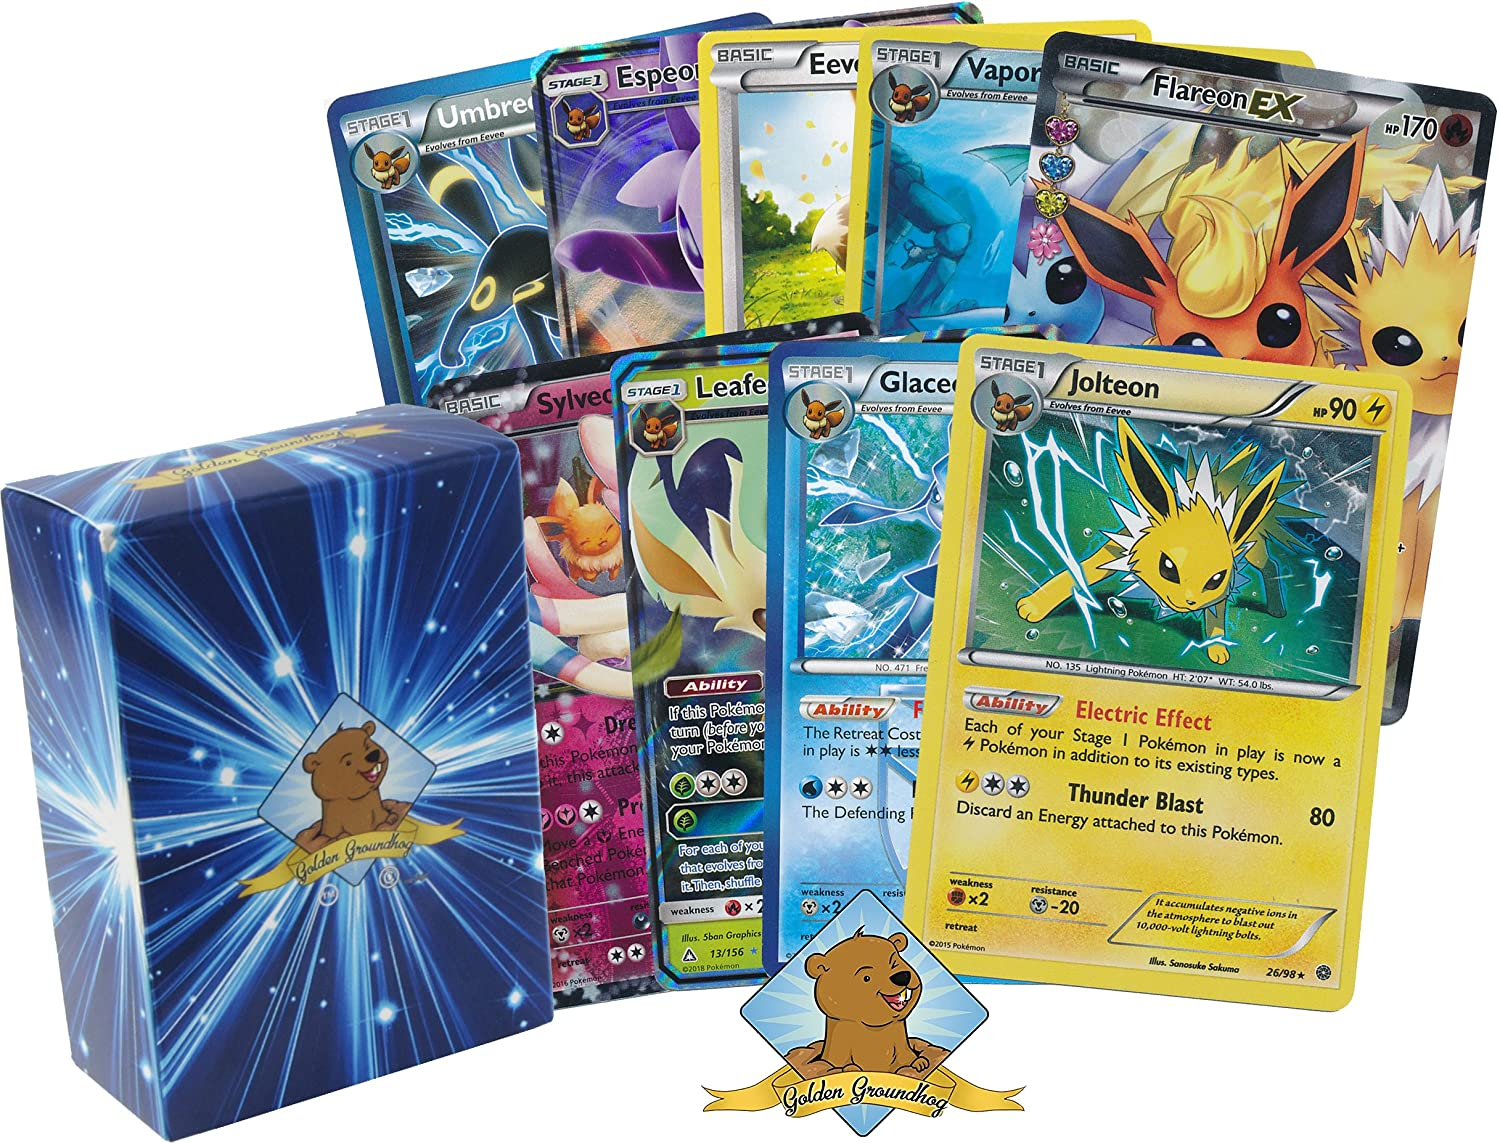 Pokémon Figurine 3-pack Vaporeon And Flareon To Collect And Love Jolteon